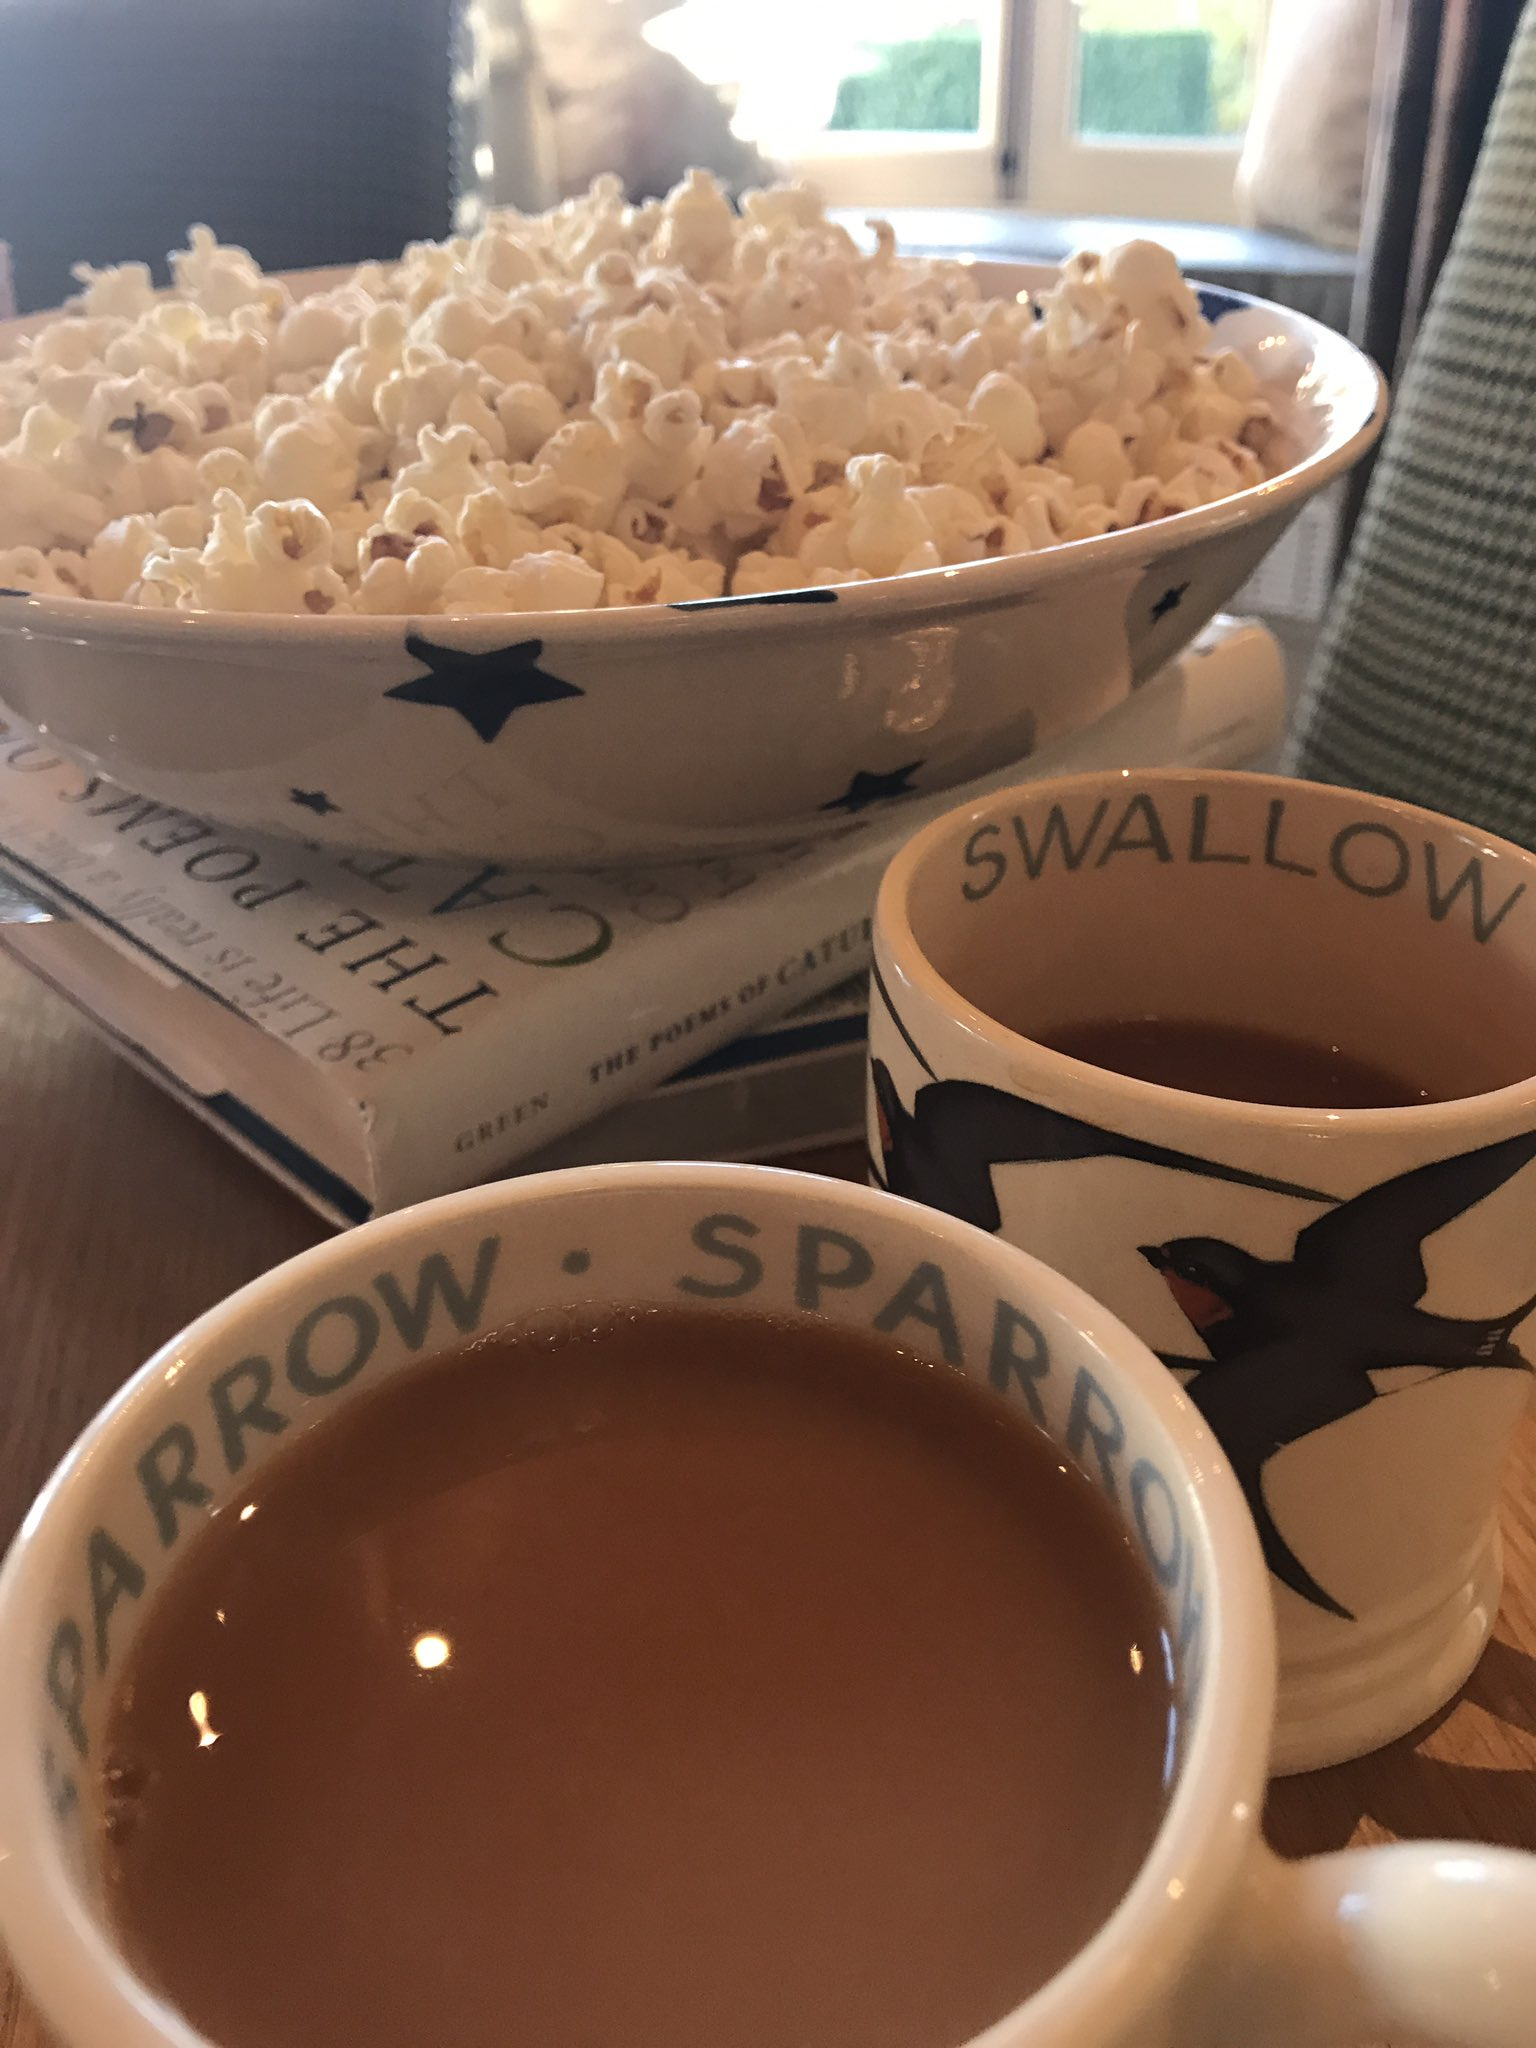 Greater love hath no man than this: that, unasked, he doth bring tea & popcorn to the writing room in the garden. https://t.co/2e5SUbE6kT